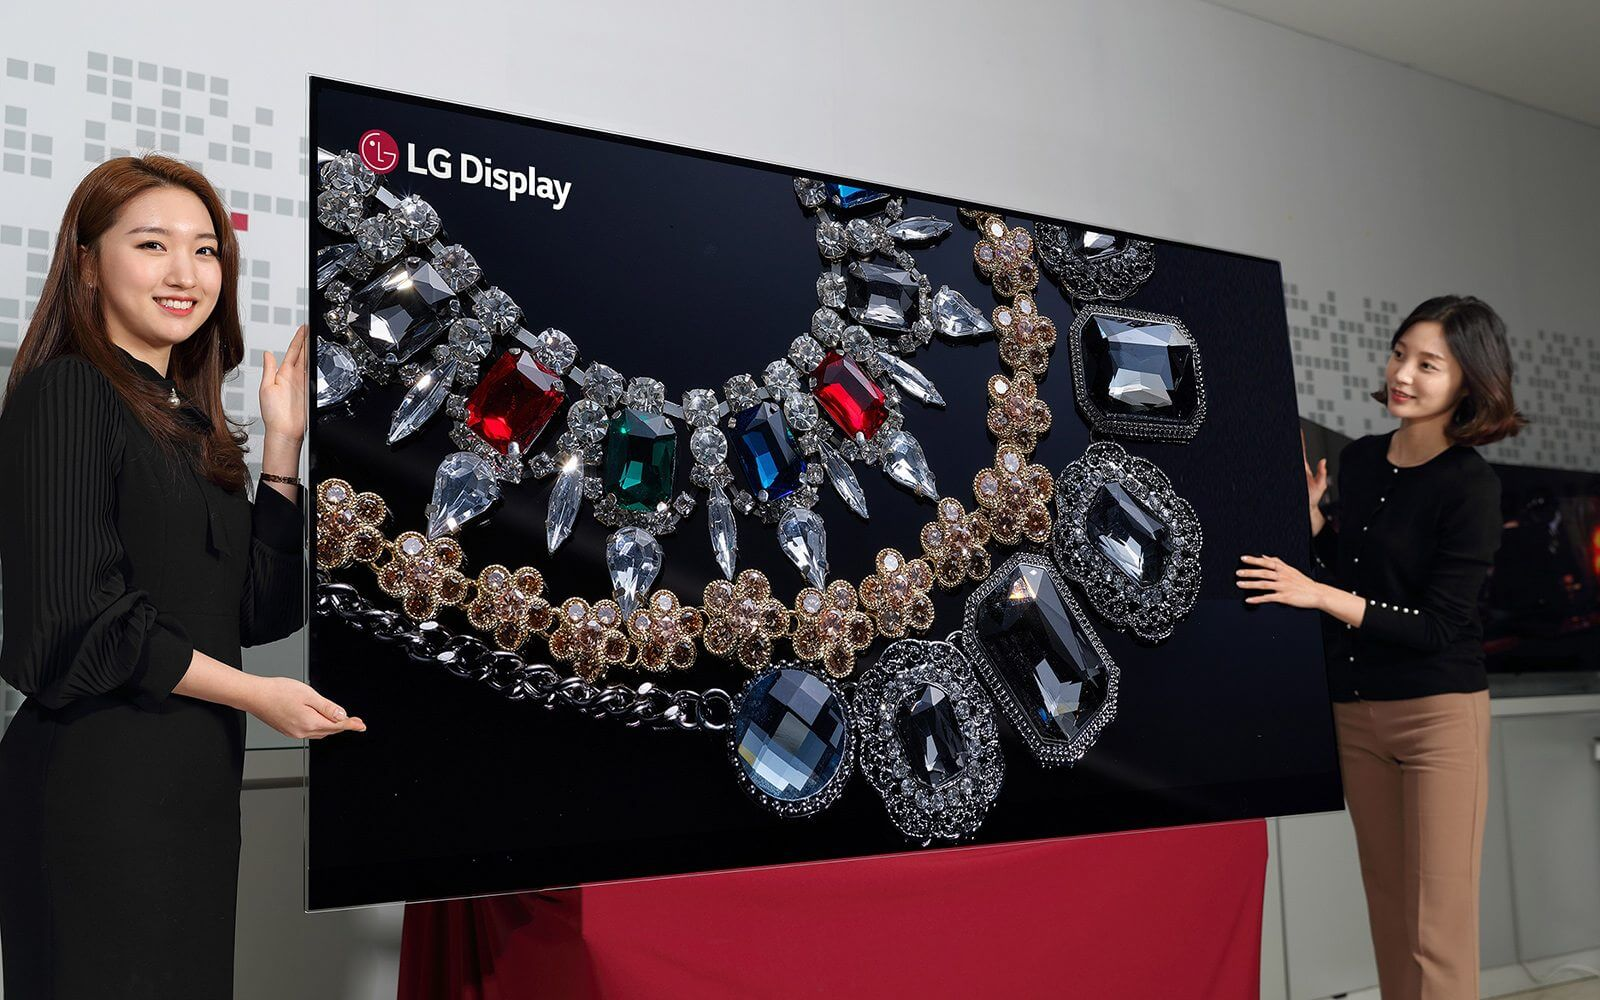 LG Display 88 inch 8K OLED Display - LG anuncia a primeira TV OLED 8K de 88 polegadas do mundo